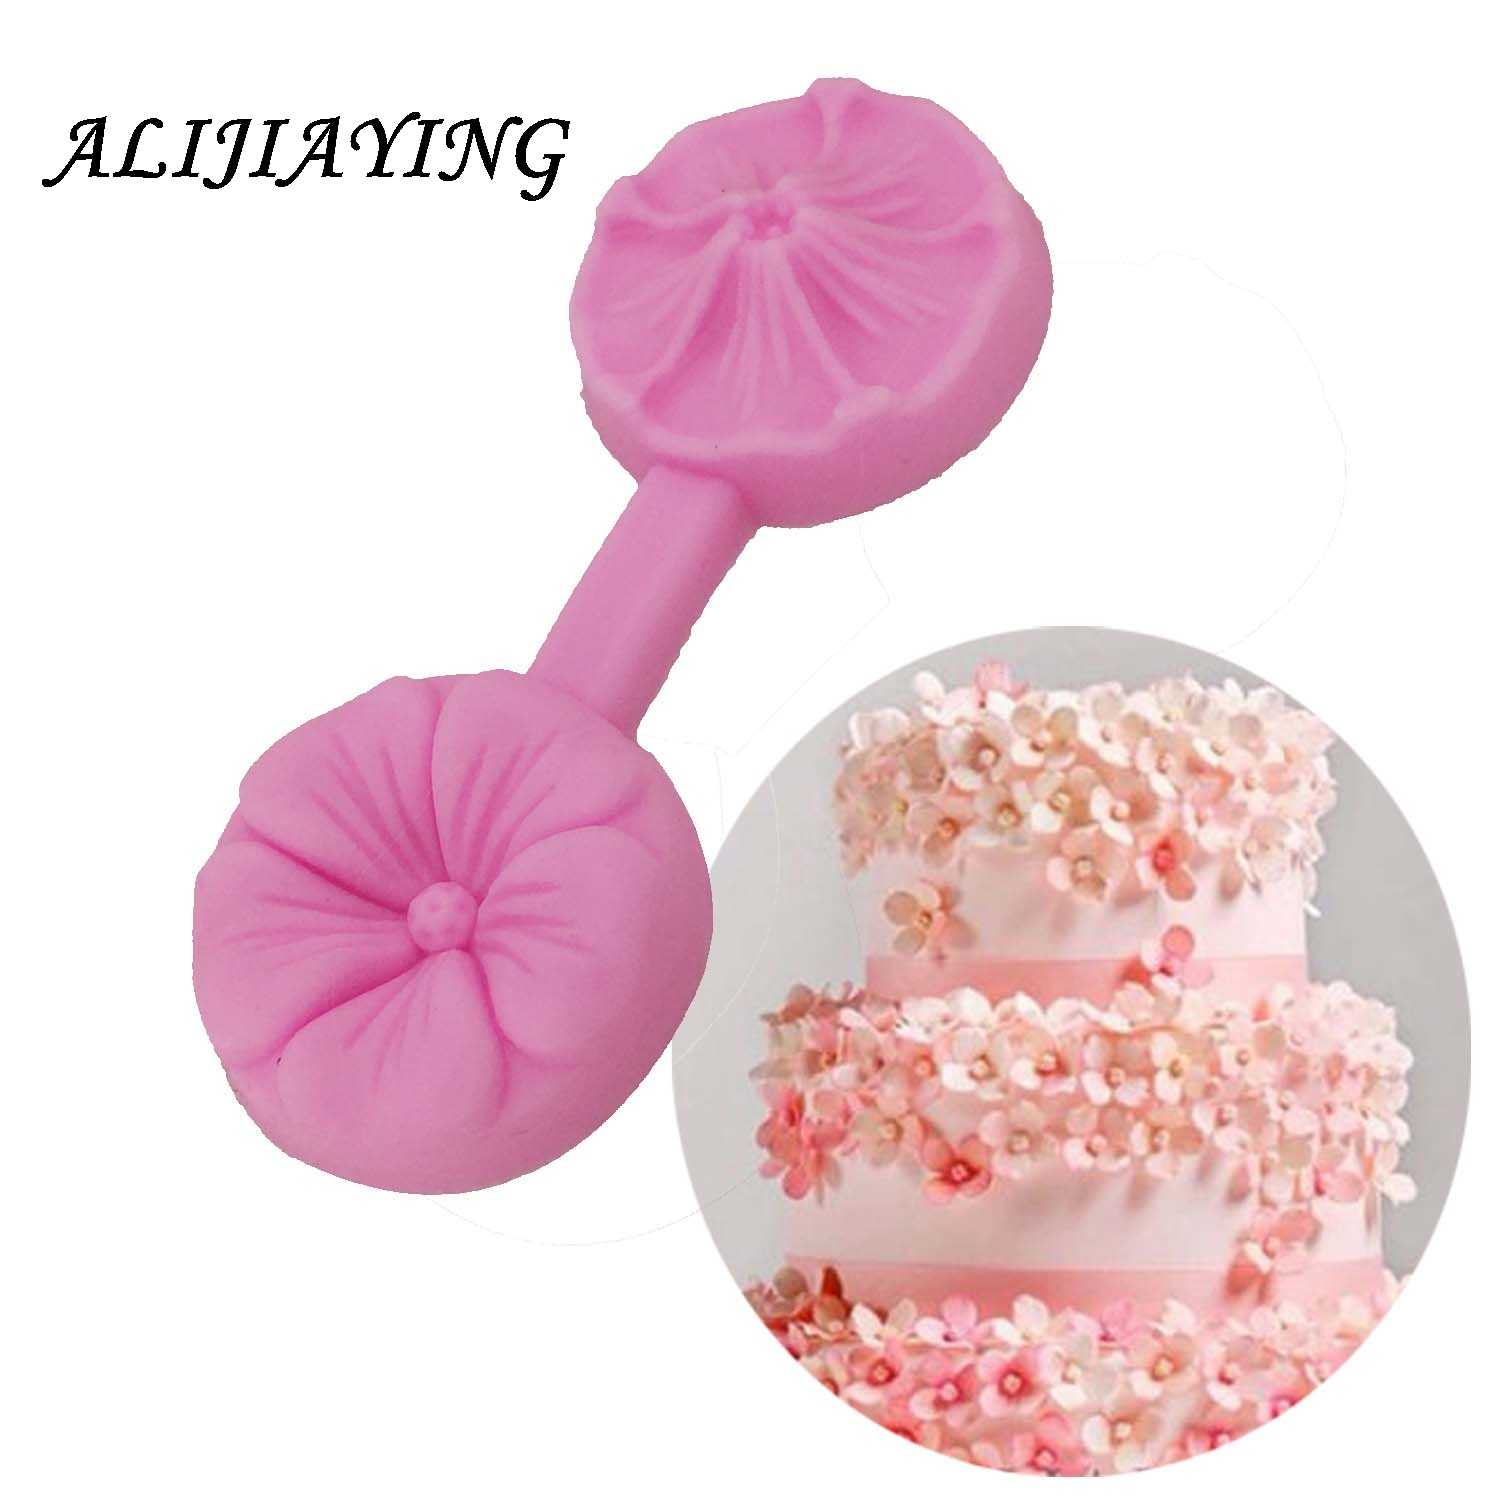 Flower Silicone Mold Sugarcraft Embossed Fondant Cake Decorating Tools Fimo Clay Candy Jelly Chocolate Gumpaste Molds D0658